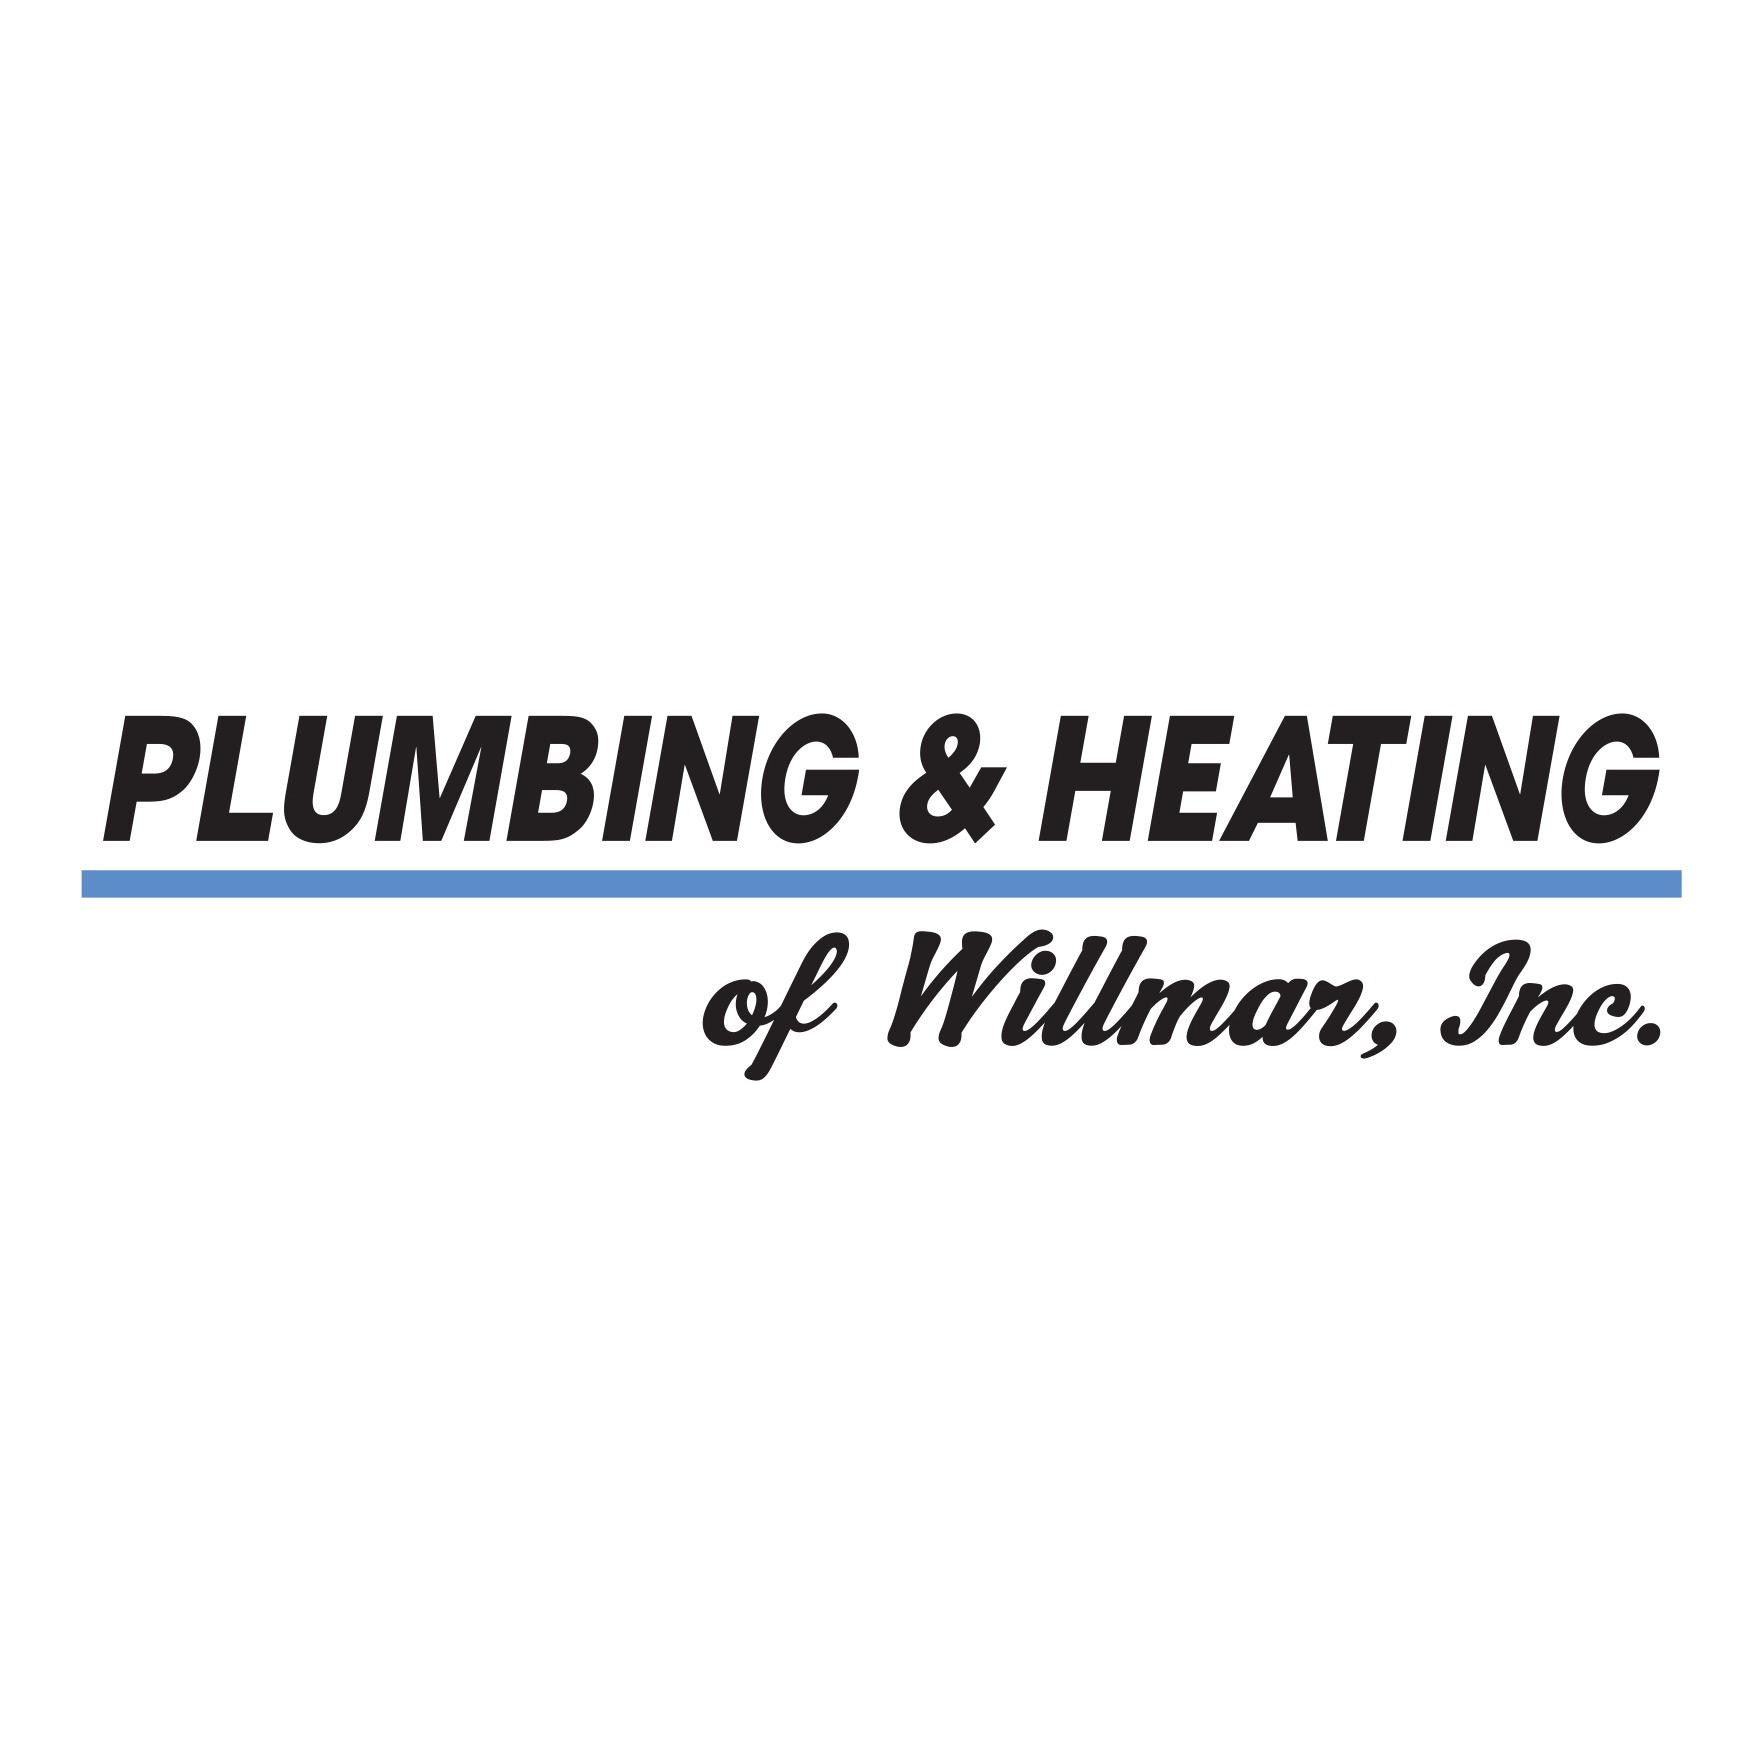 Plumbing & Heating Of Willmar Inc - Willmar, MN 56201 - (320)235-4962 | ShowMeLocal.com